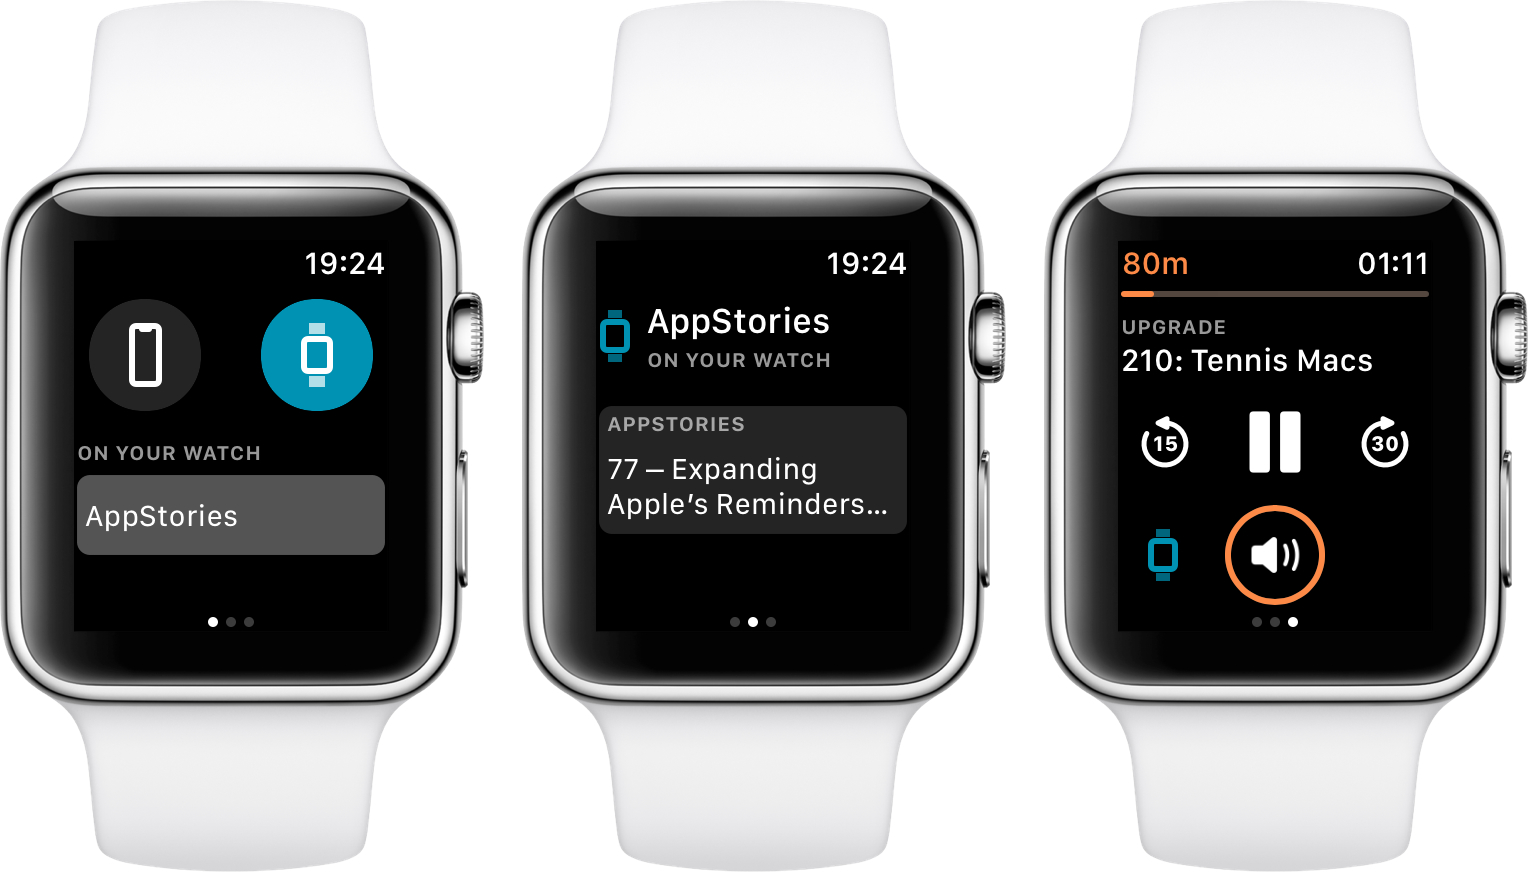 The new Overcast Watch app.